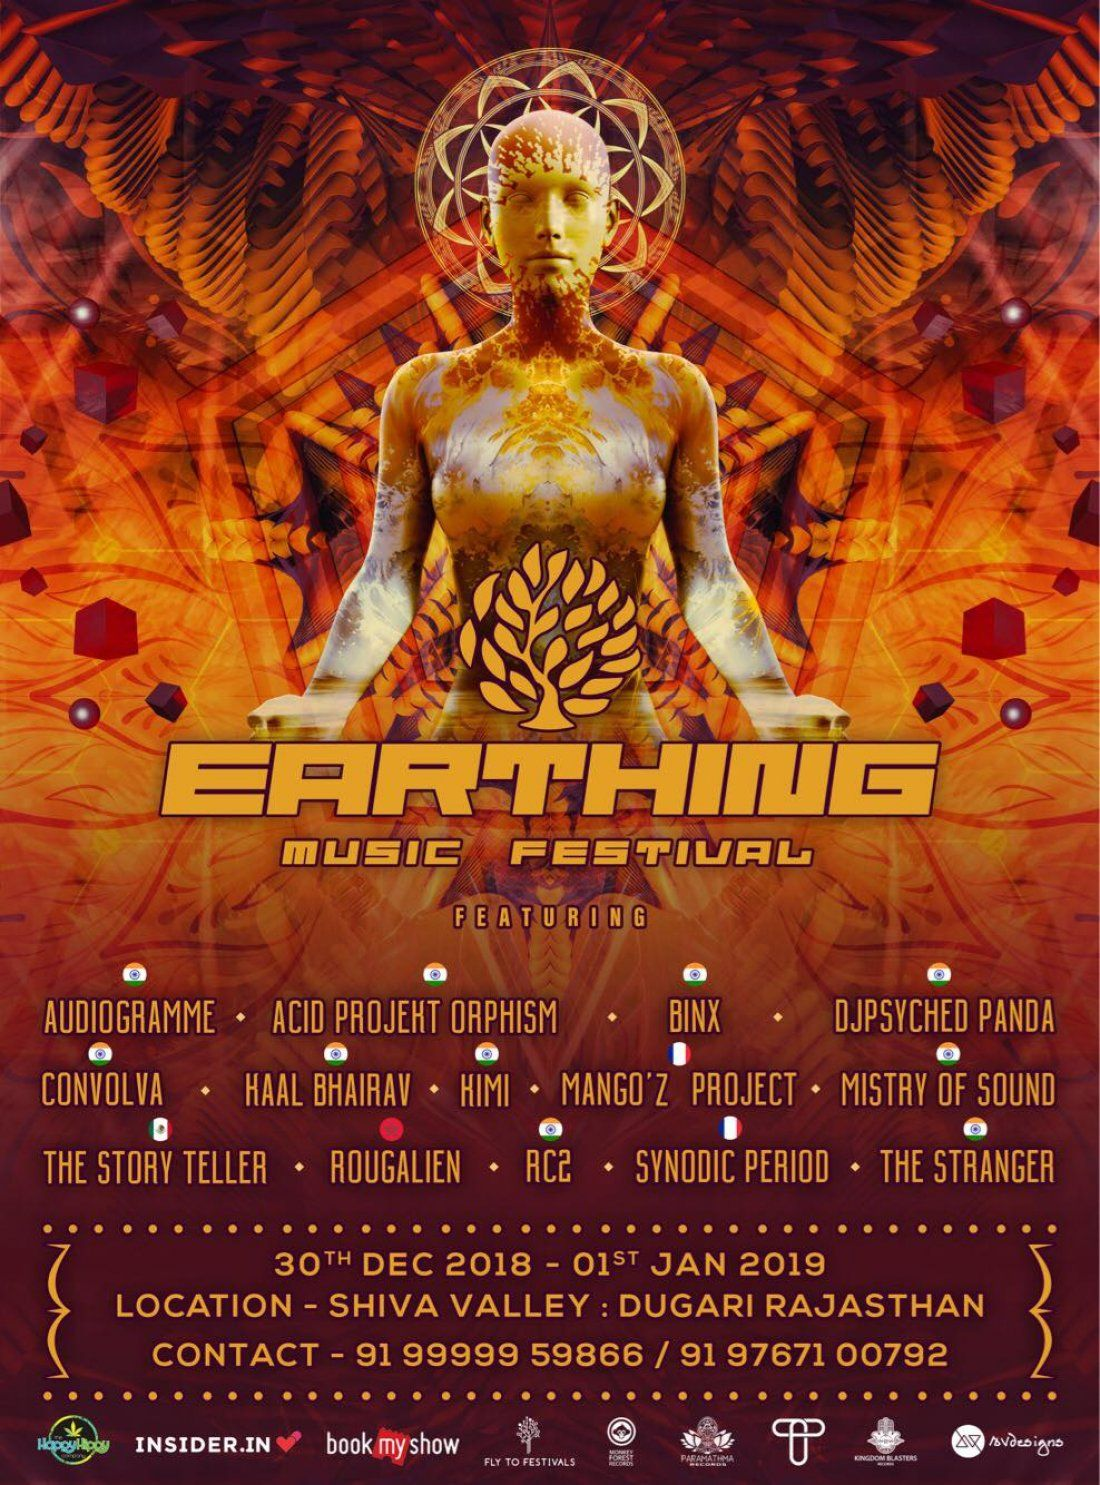 Earthing Music Festival 2018